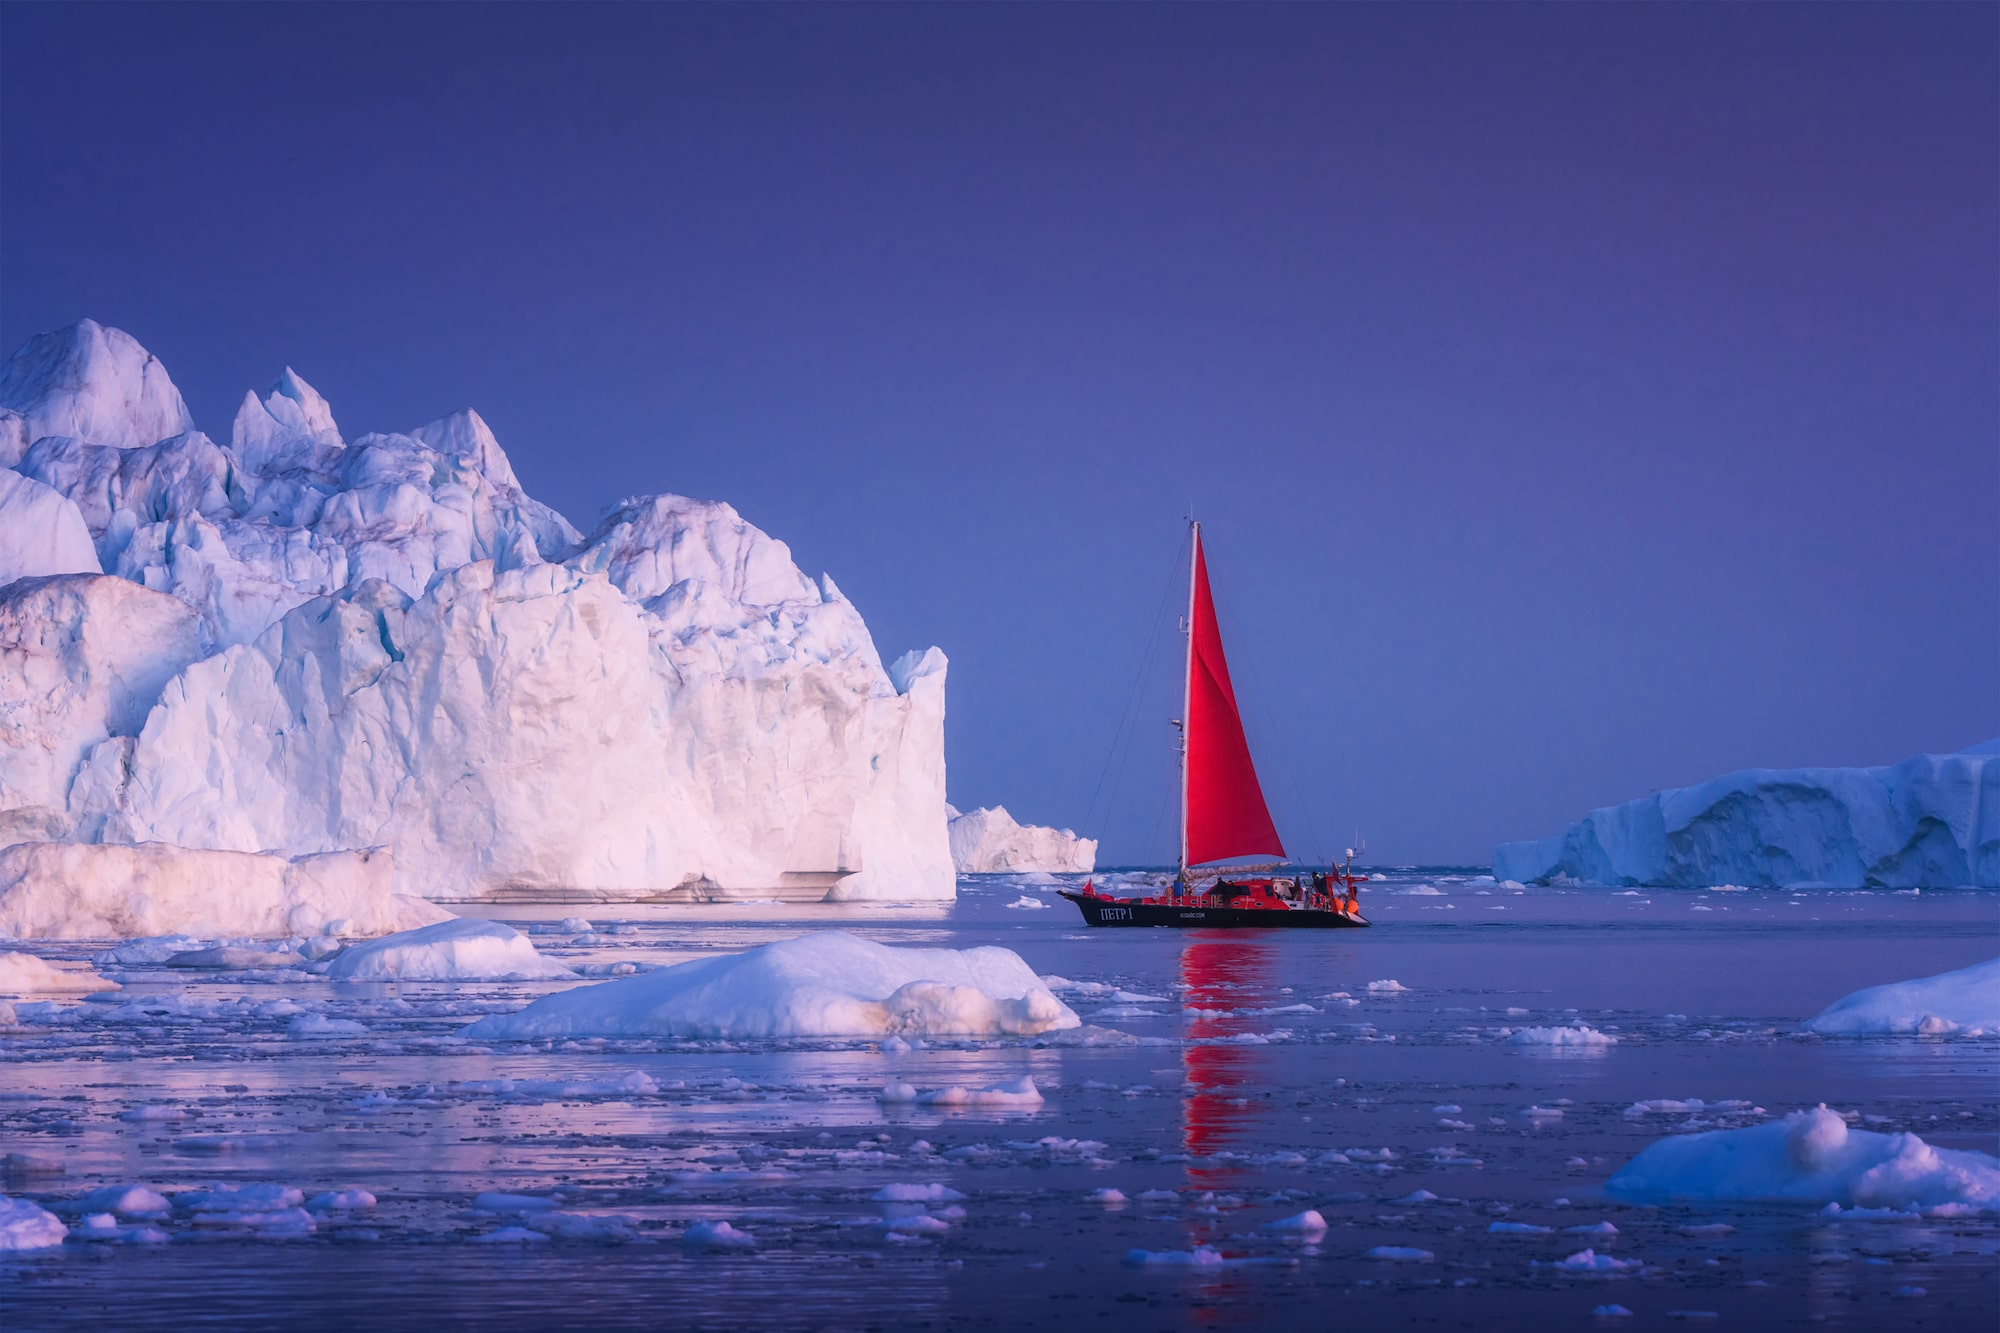 albert dros sony alpha A7RM4 a red sailed ship cruises gently in front of a sunlit iceberg